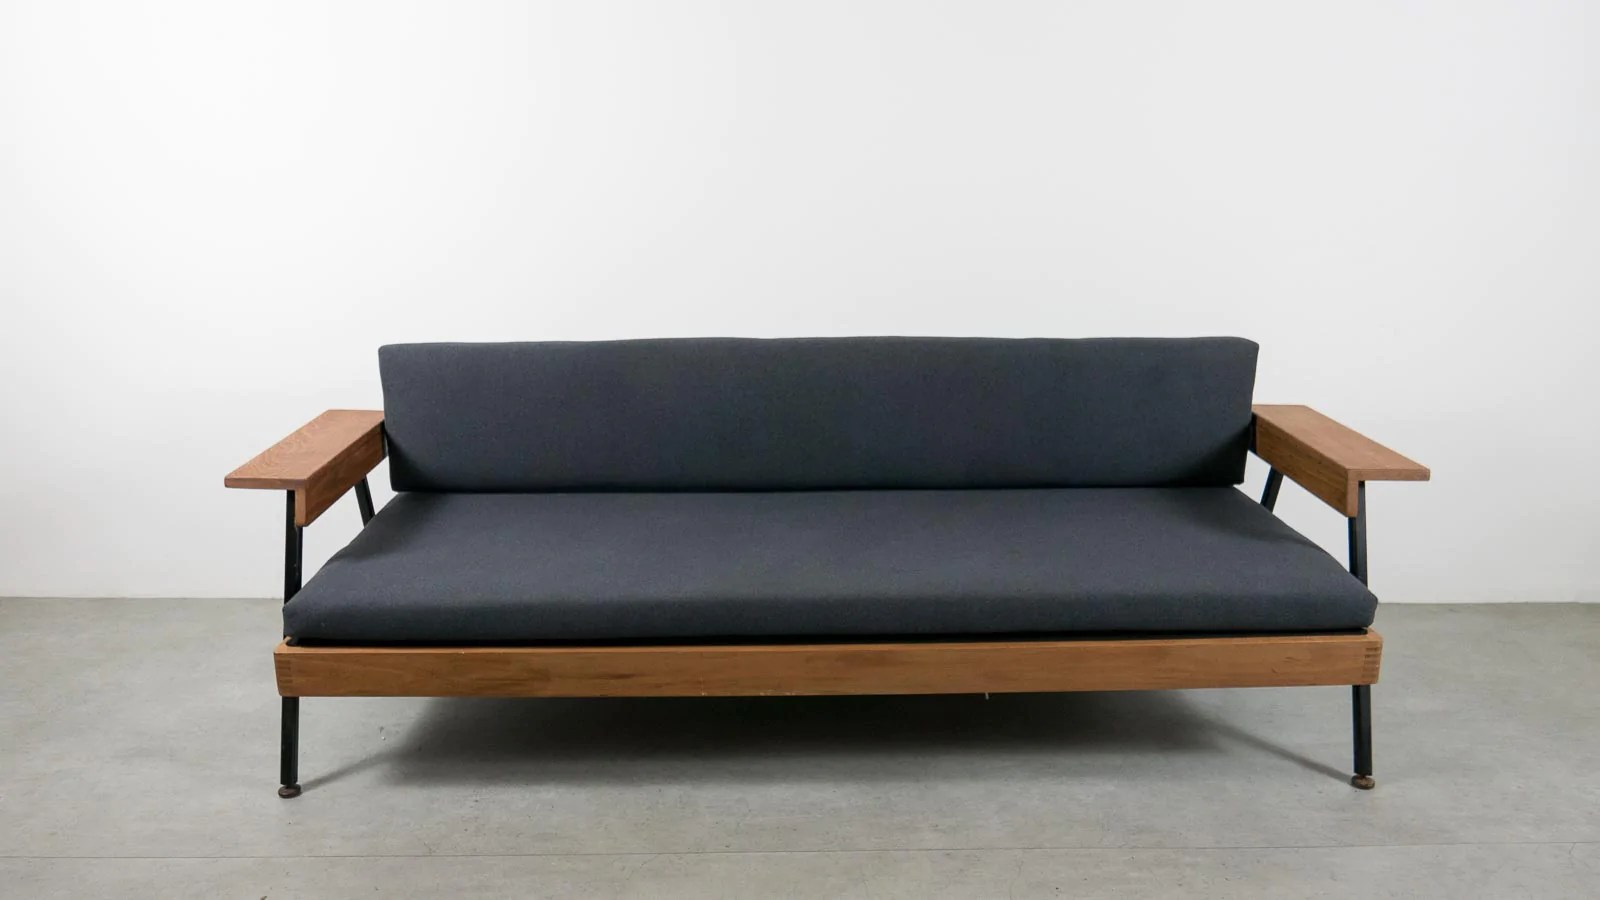 Midcentury Modern Sofa Bed Ebtd Mid Century Modern Single Sofa Bed